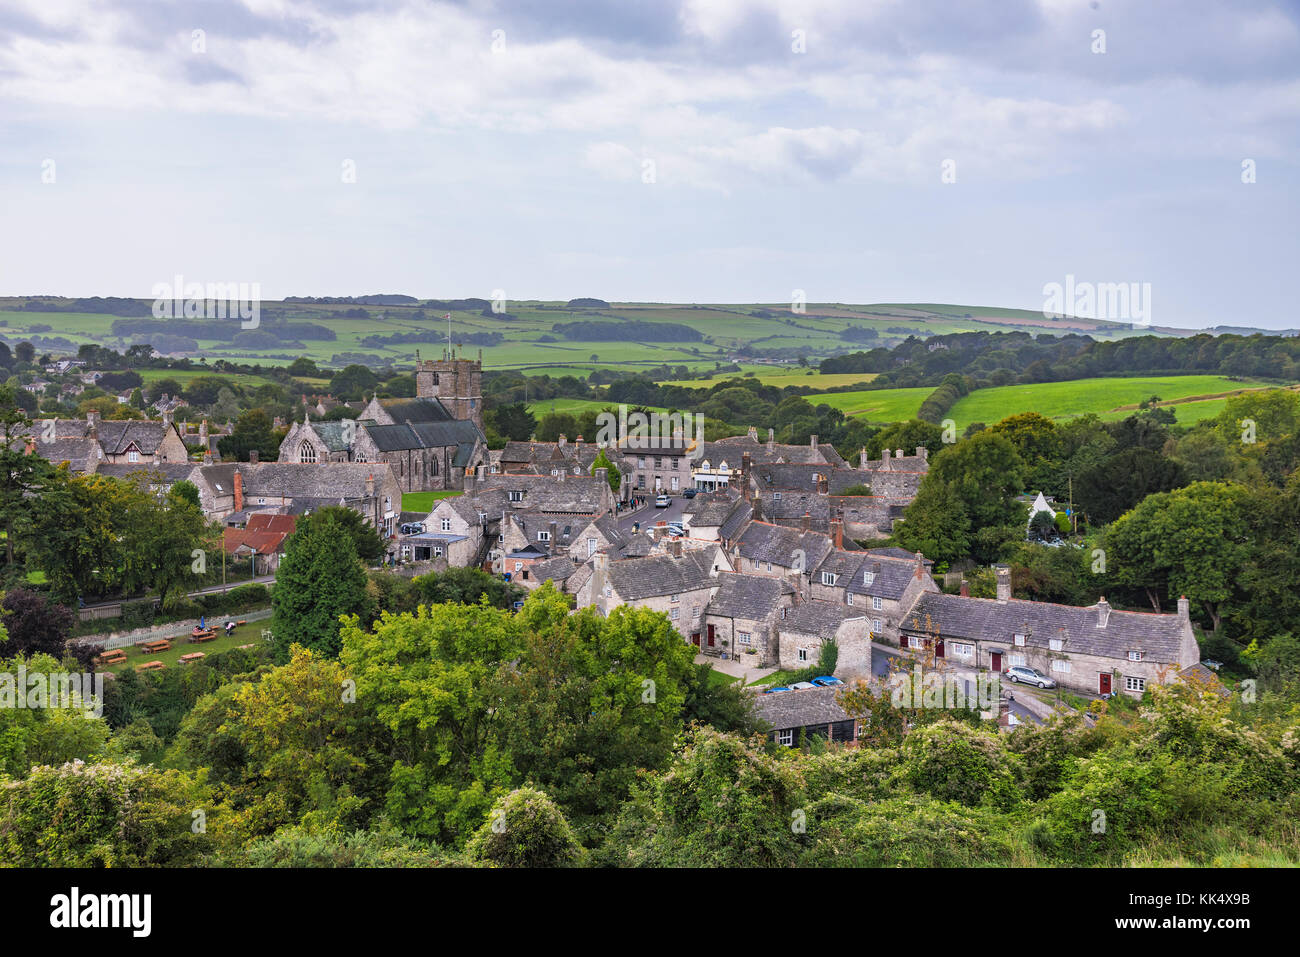 View of Corfe medieval village and countryside in England - Stock Image